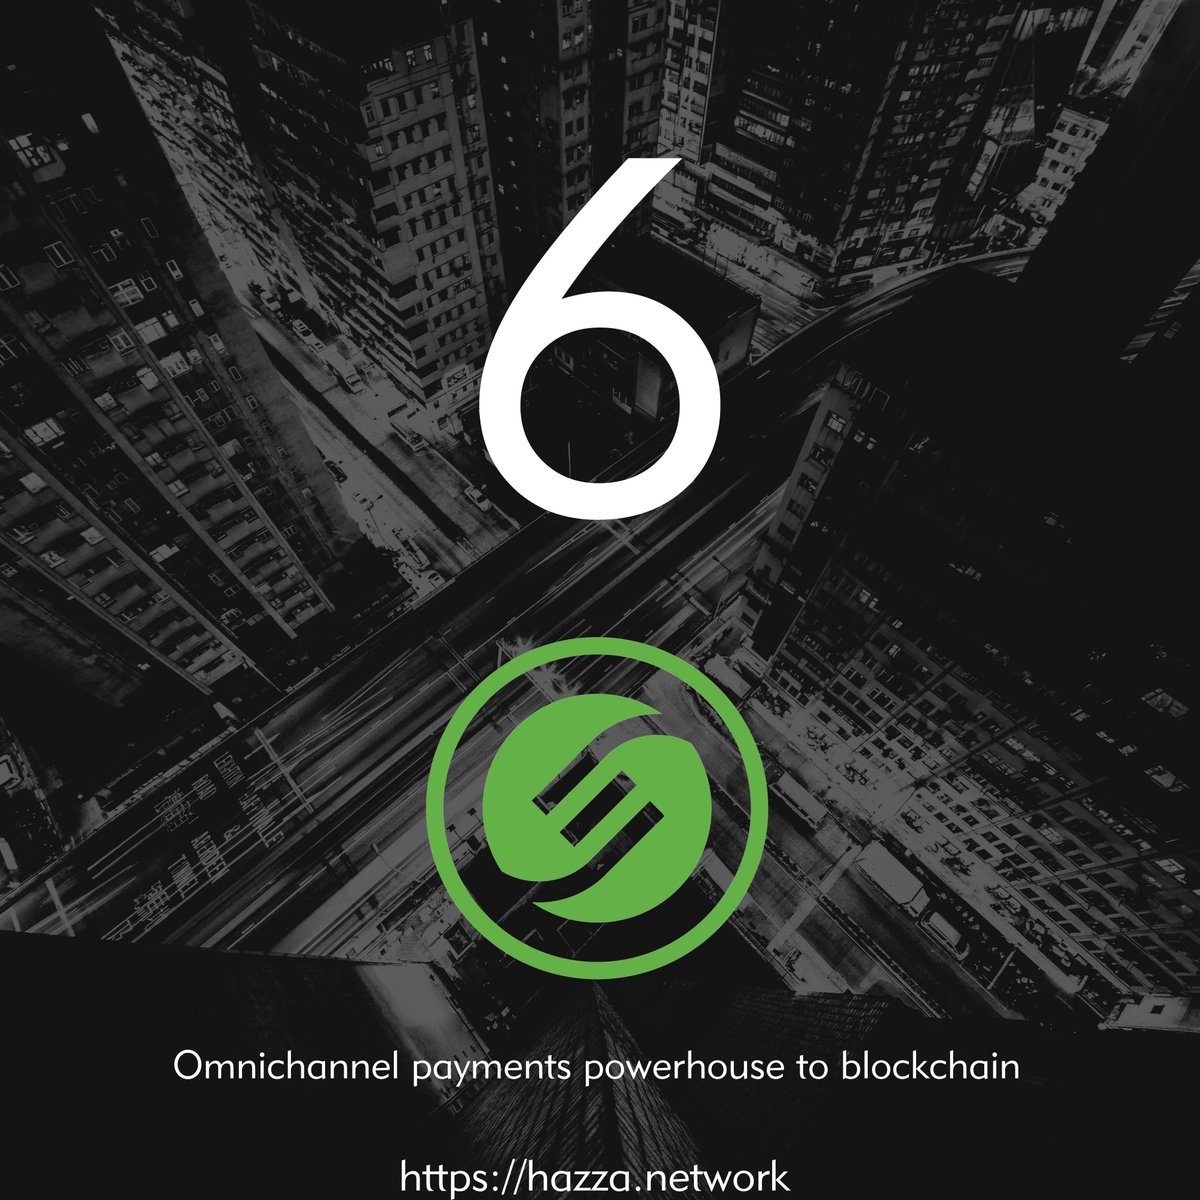 Less than a week to go! Get familiar with our documents available:  https:// hazza.network/documents.html  &nbsp;   #fintech #blockchain #disruption #payments<br>http://pic.twitter.com/u2SX88bpCa